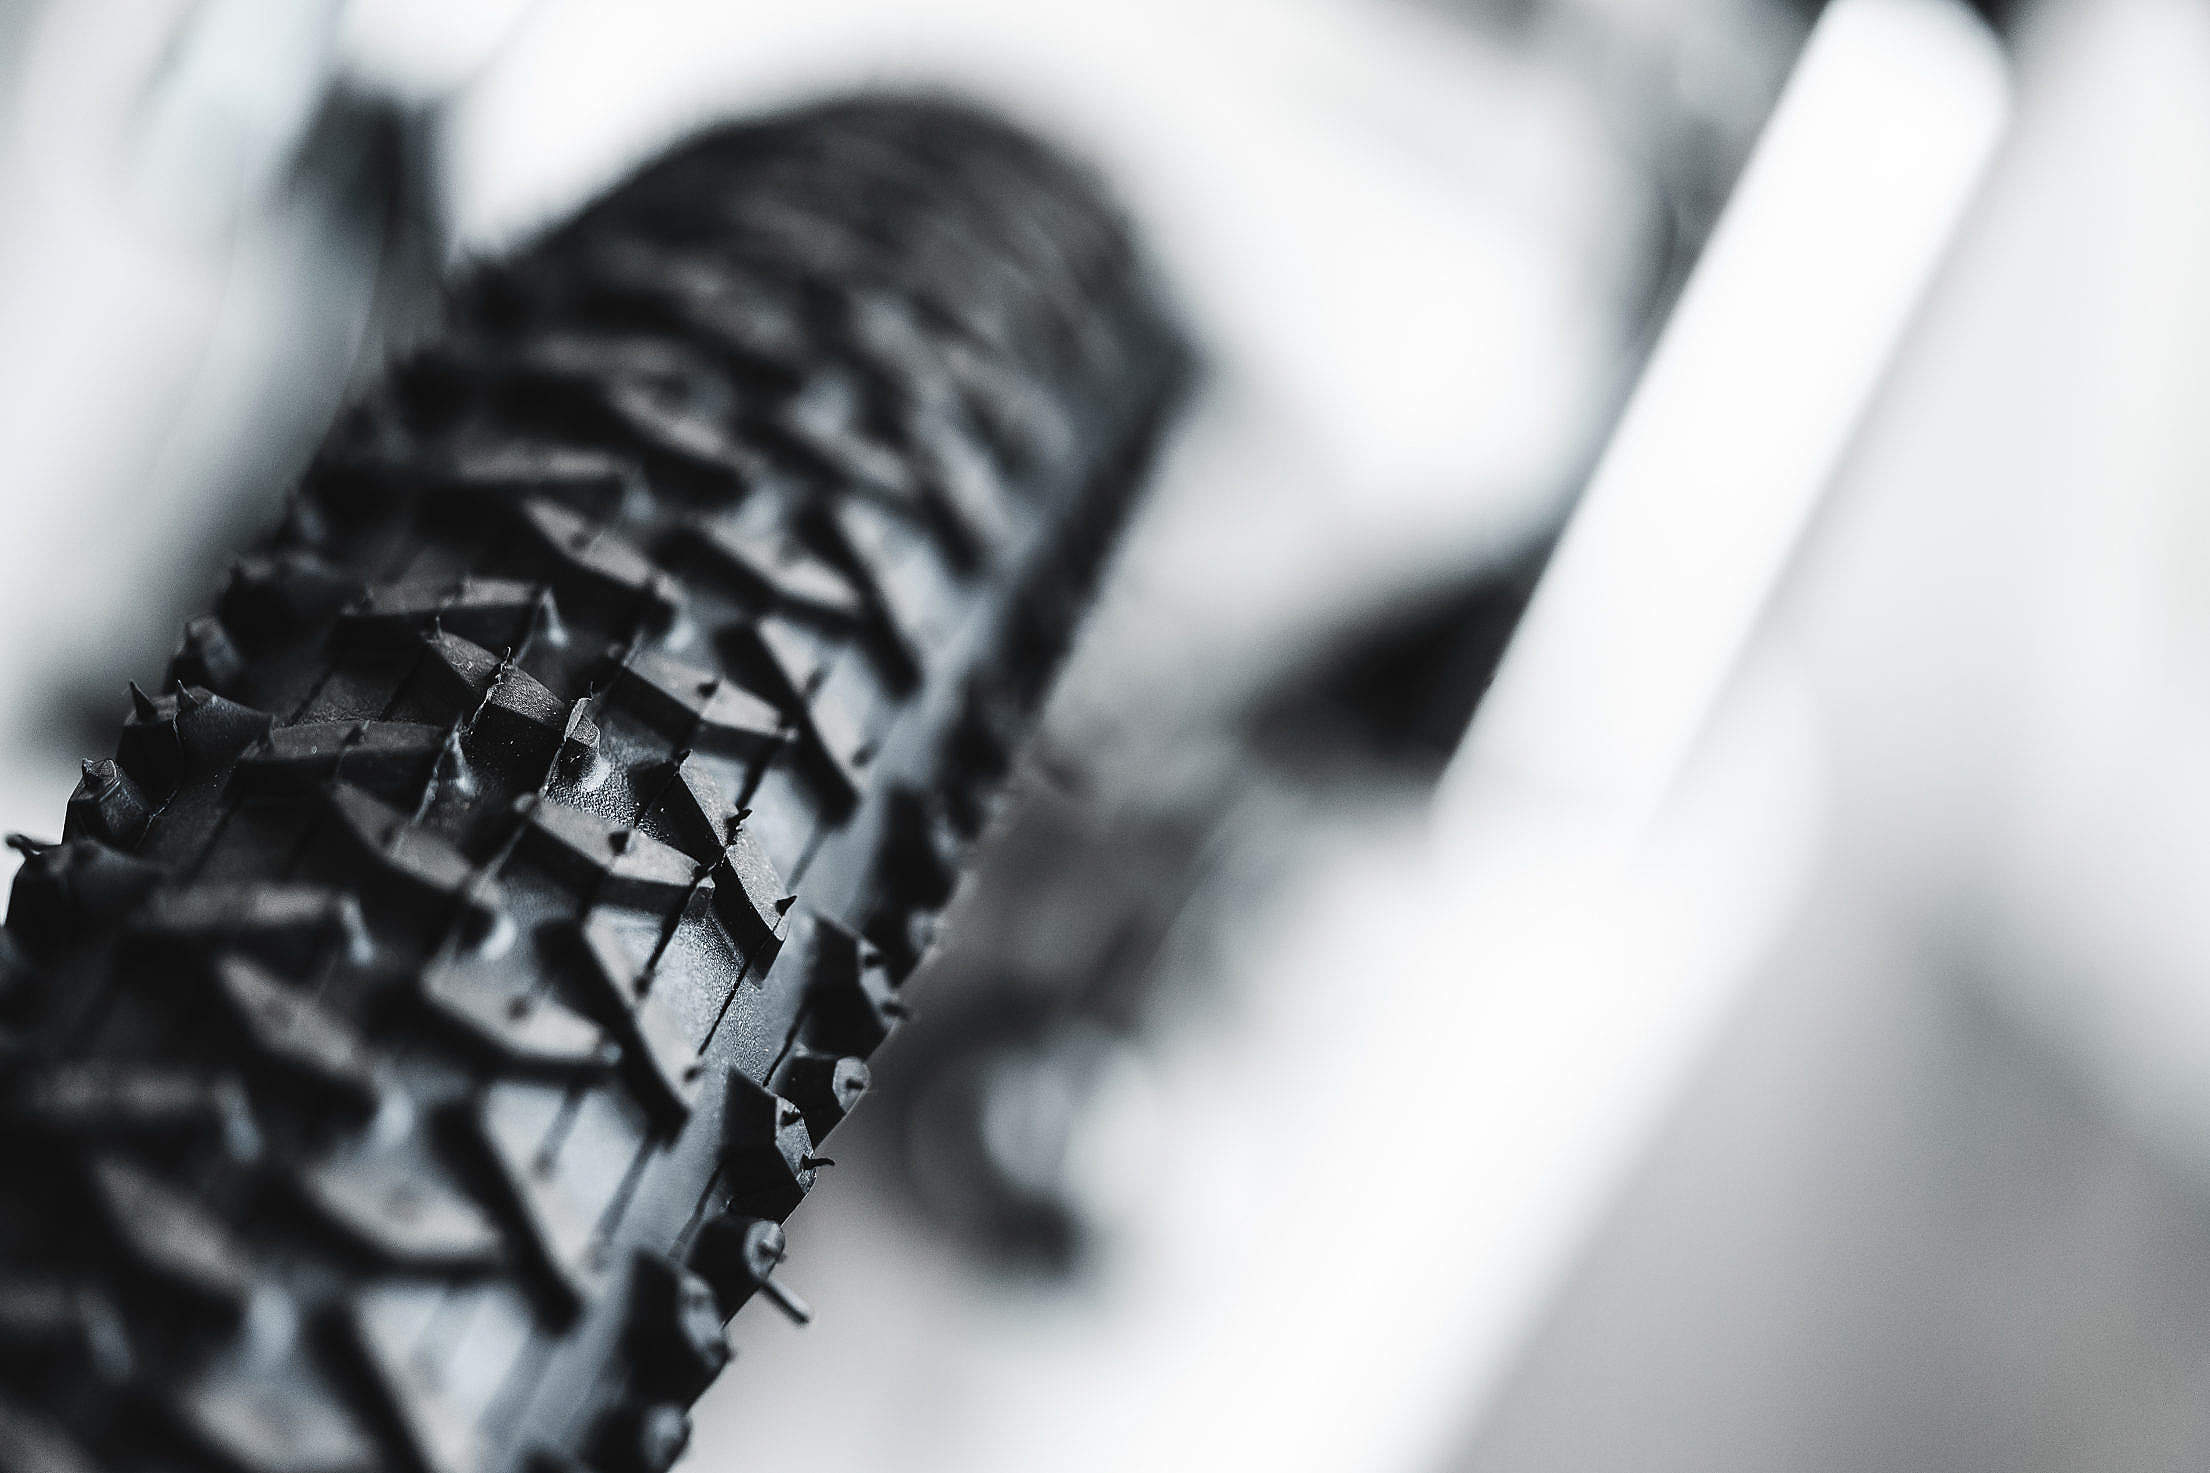 A Bicycle Tyre Free Stock Photo